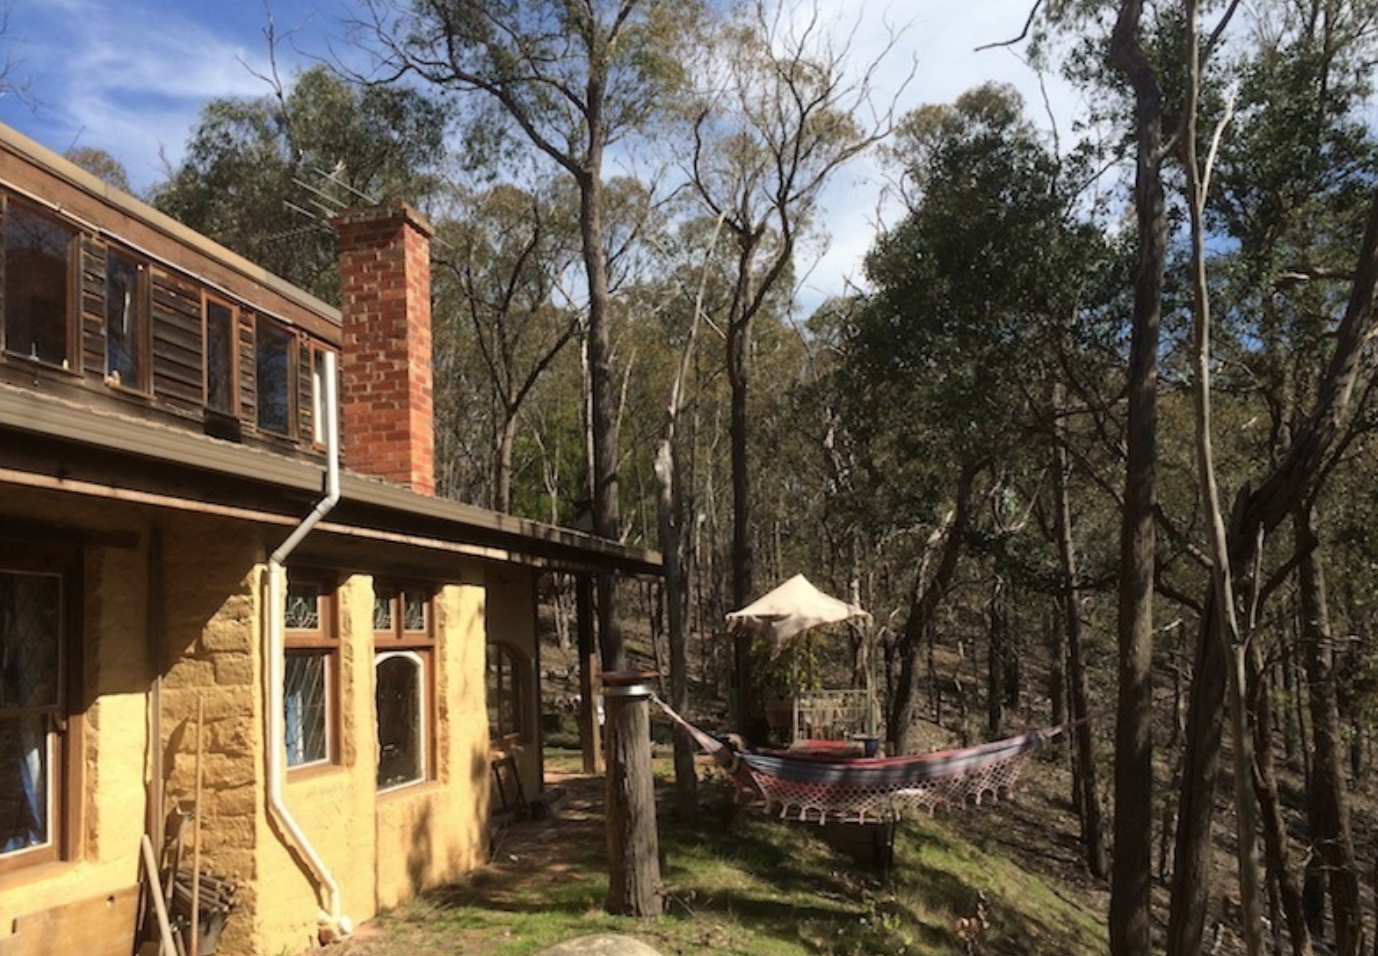 Bend of Islands, Victoria: never leaving that hammock